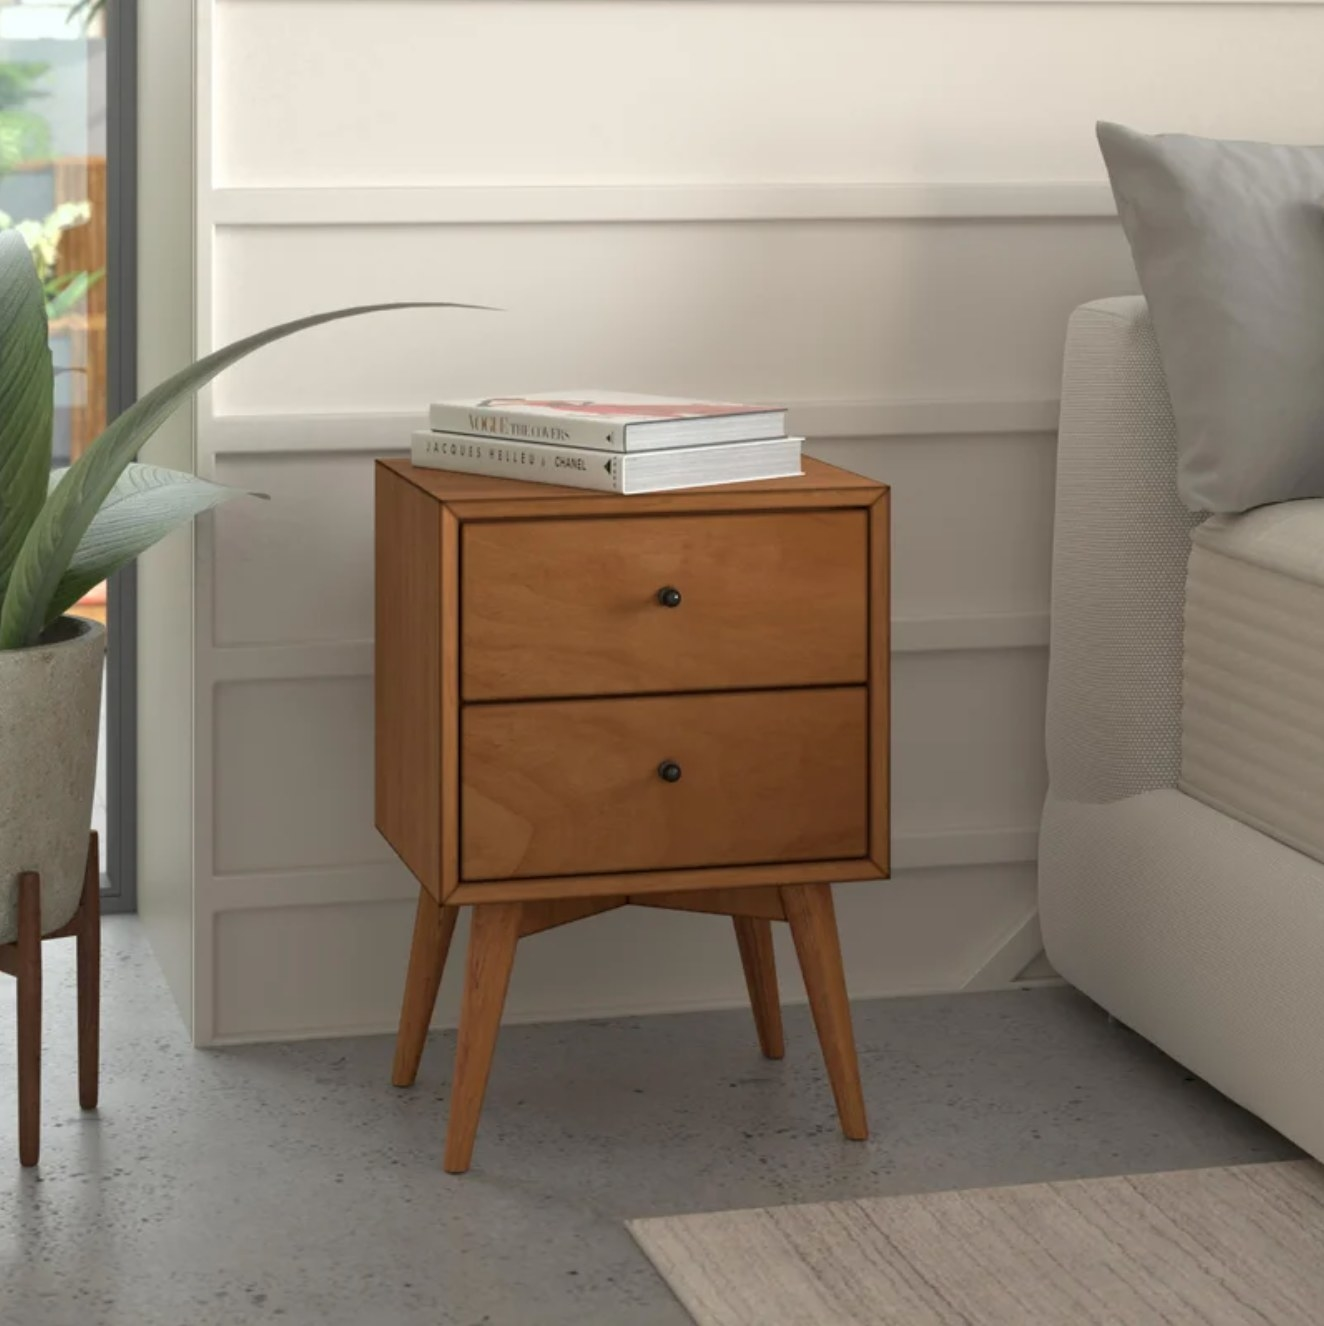 The two drawer nightstand in acorn wood